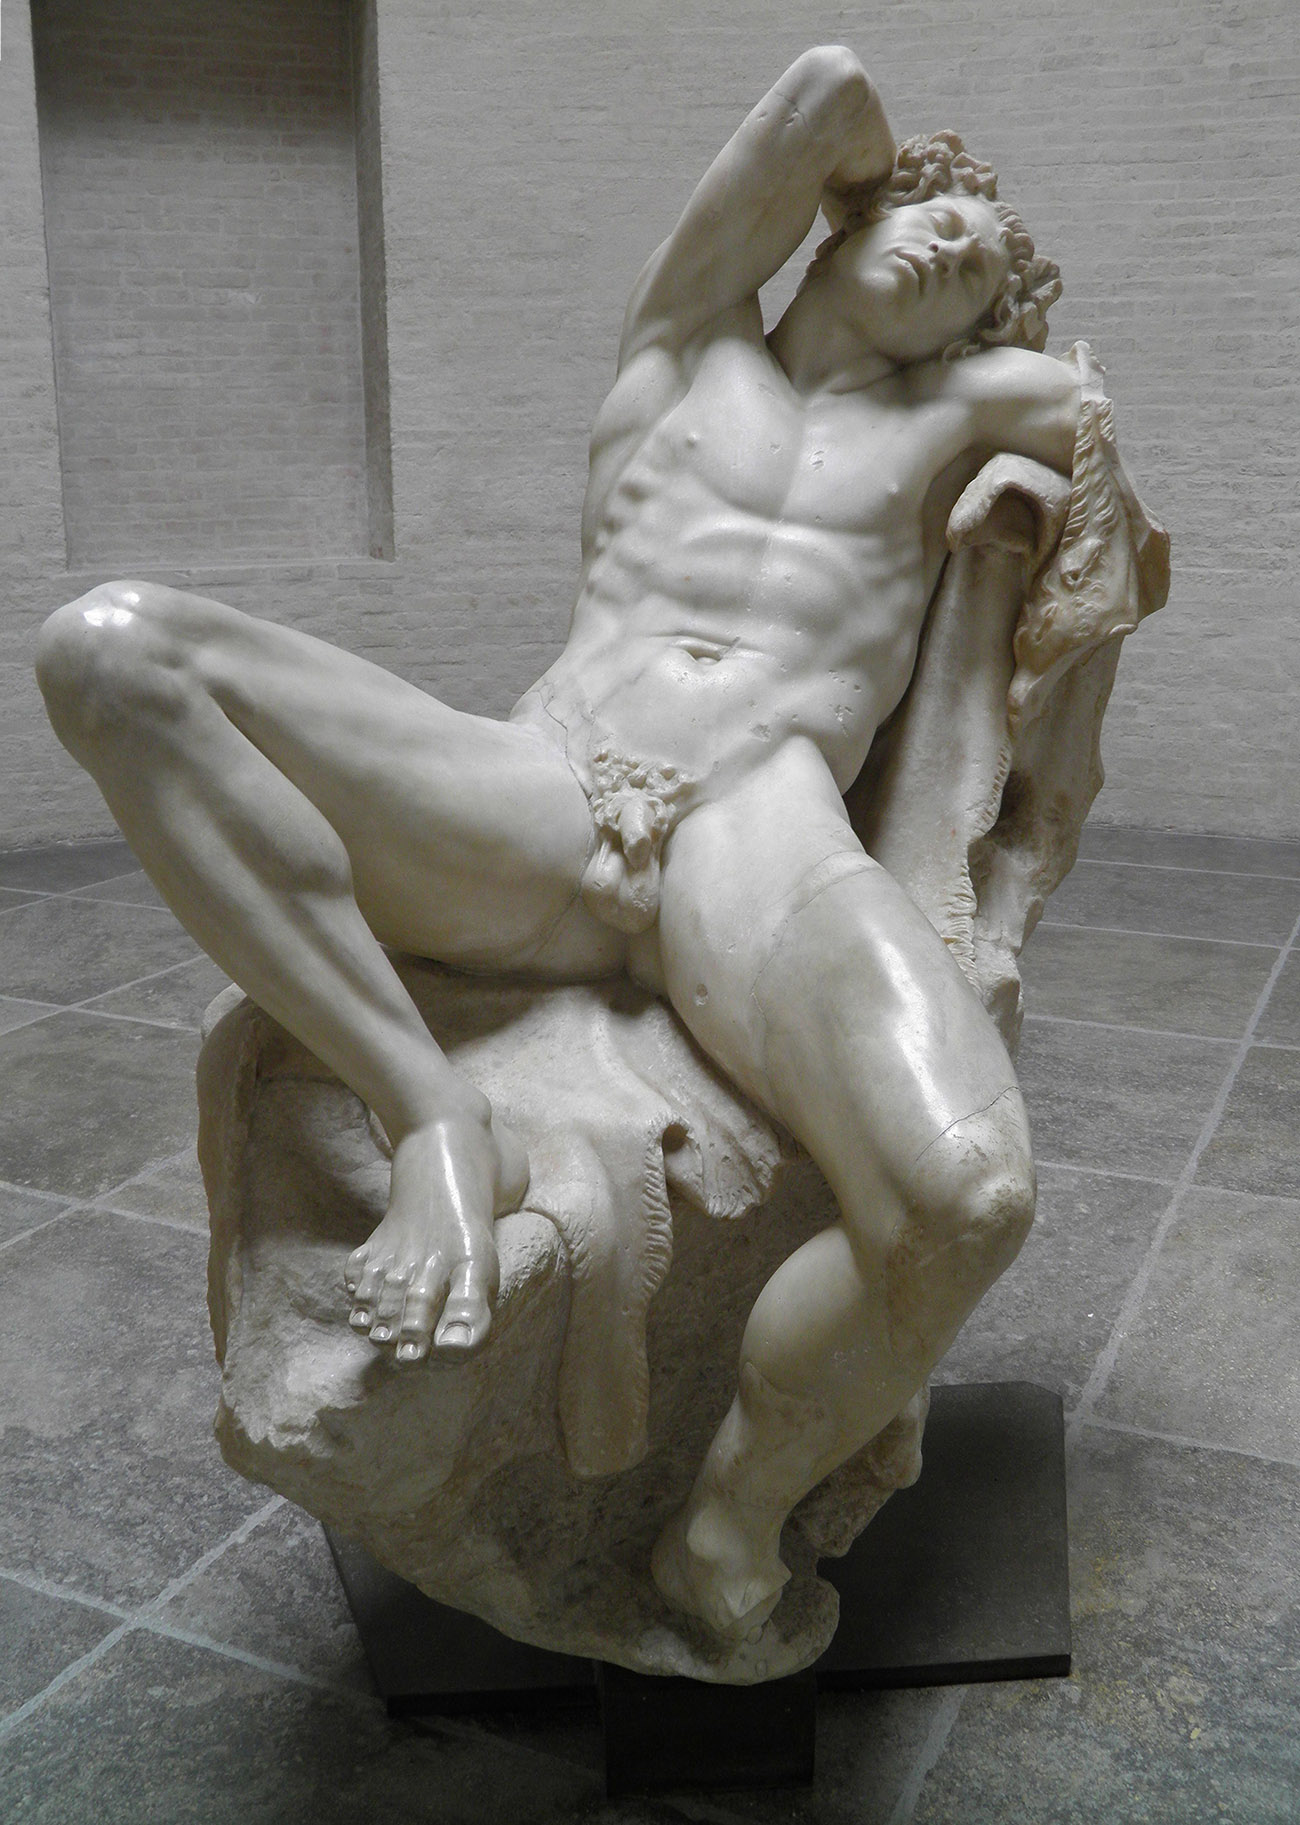 Barberini Faun, ca. 220 B.C., Greek or Roman. Staatliche Antikensammlungen und Glyptothek, Munich. Photo: Carole Raddato, licensed under a Creative Commons Attribution-ShareAlike 2.0 license. Source: Wikimedia Commons